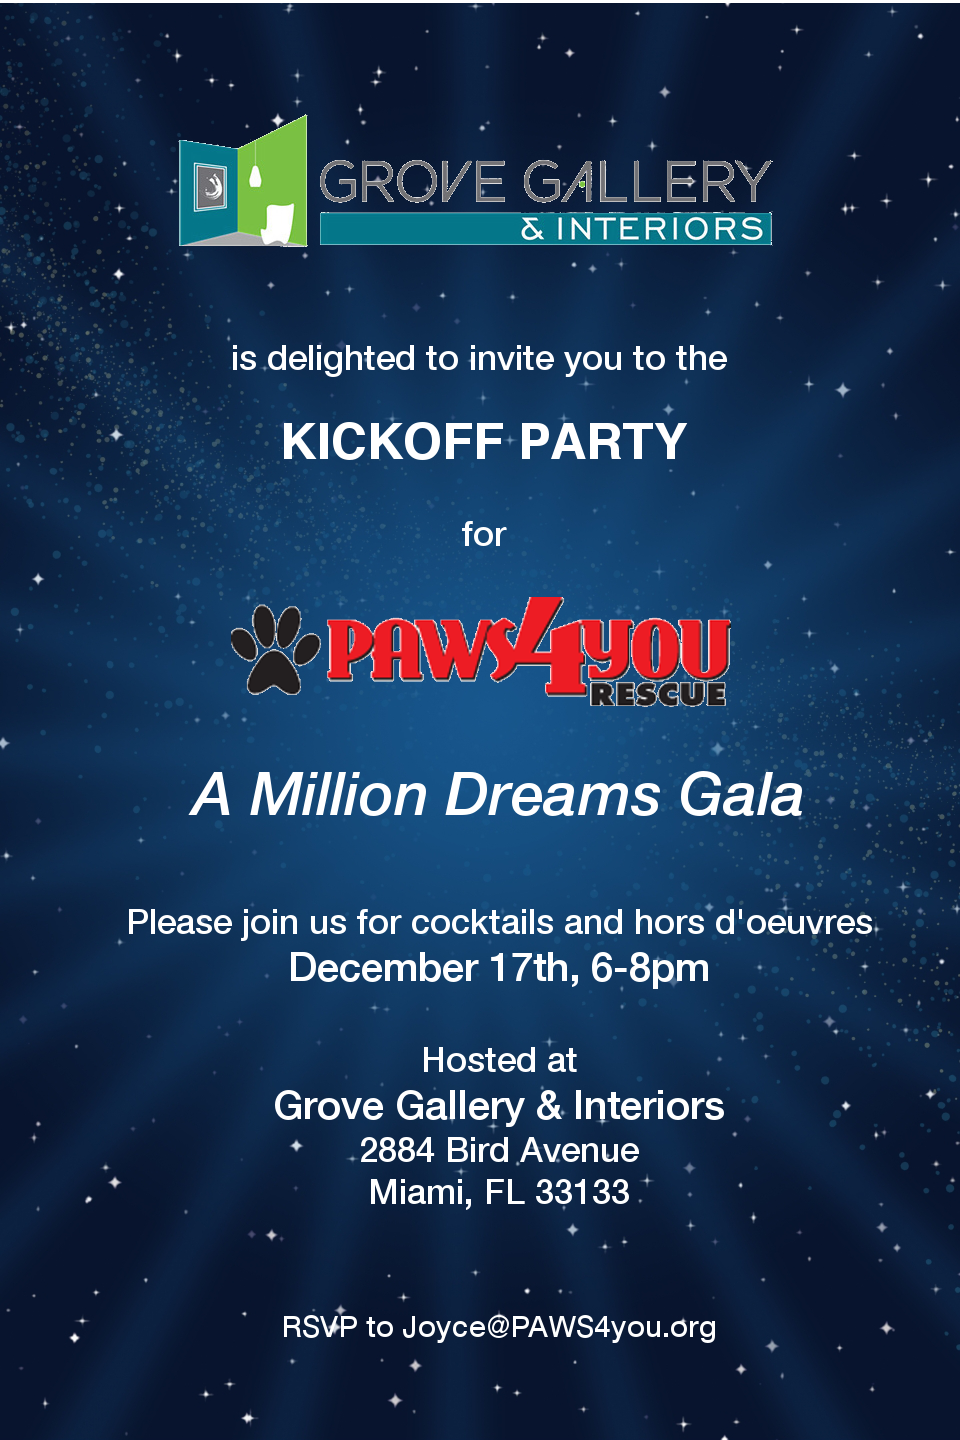 Kickoff Party at Grove Gallery & Interiors @ Grove Gallery & Interiors